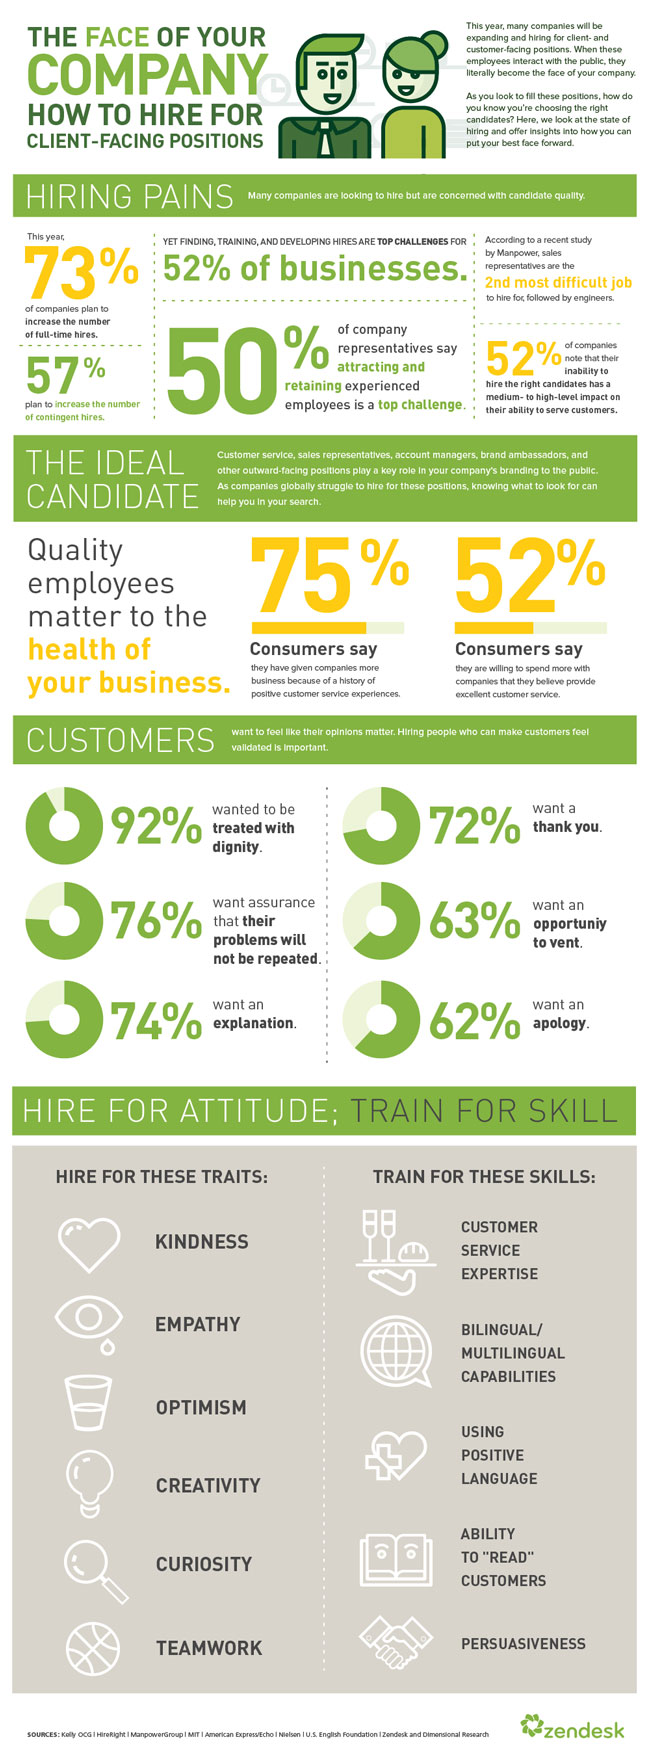 zendesk-hire-for-the-face-of-your-company-(infographic)